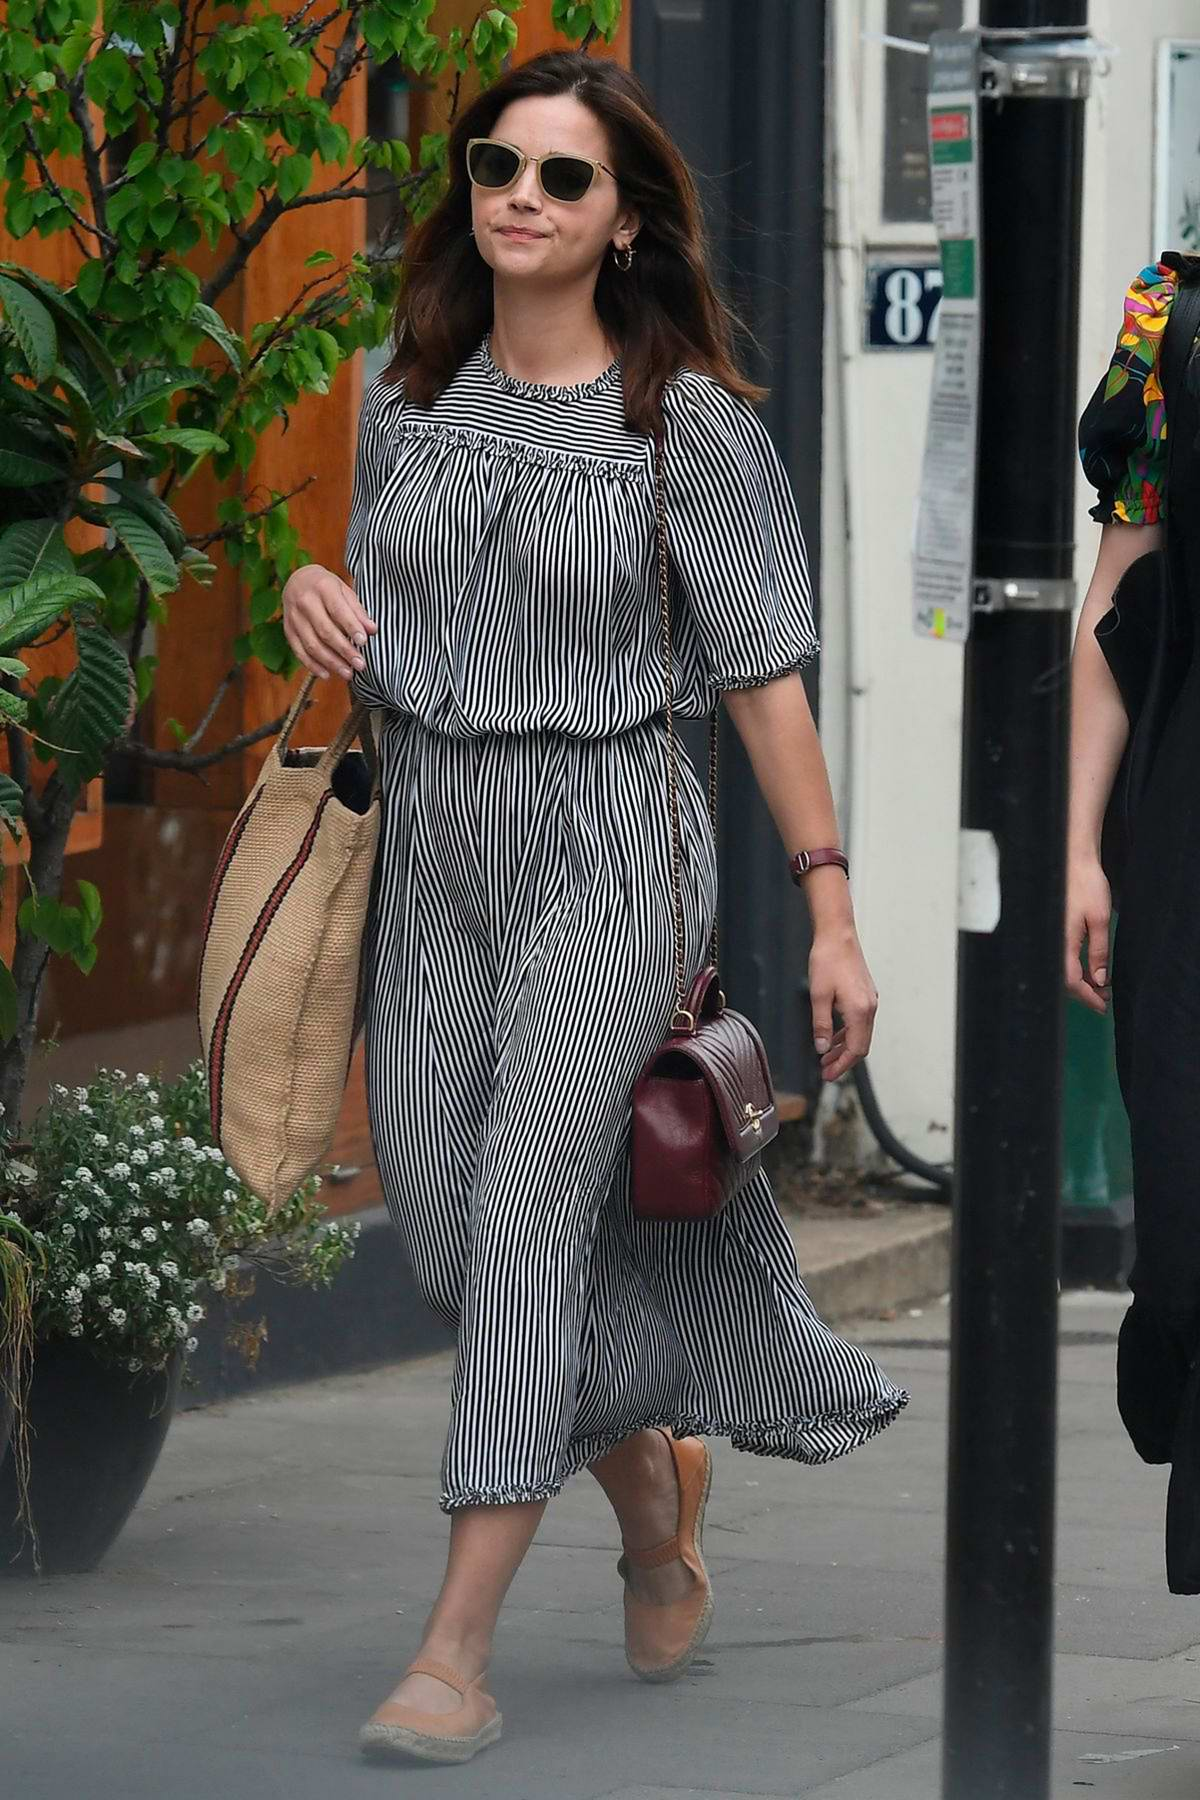 Jenna Coleman stepped out for a stroll in a monochrome dress in London, UK